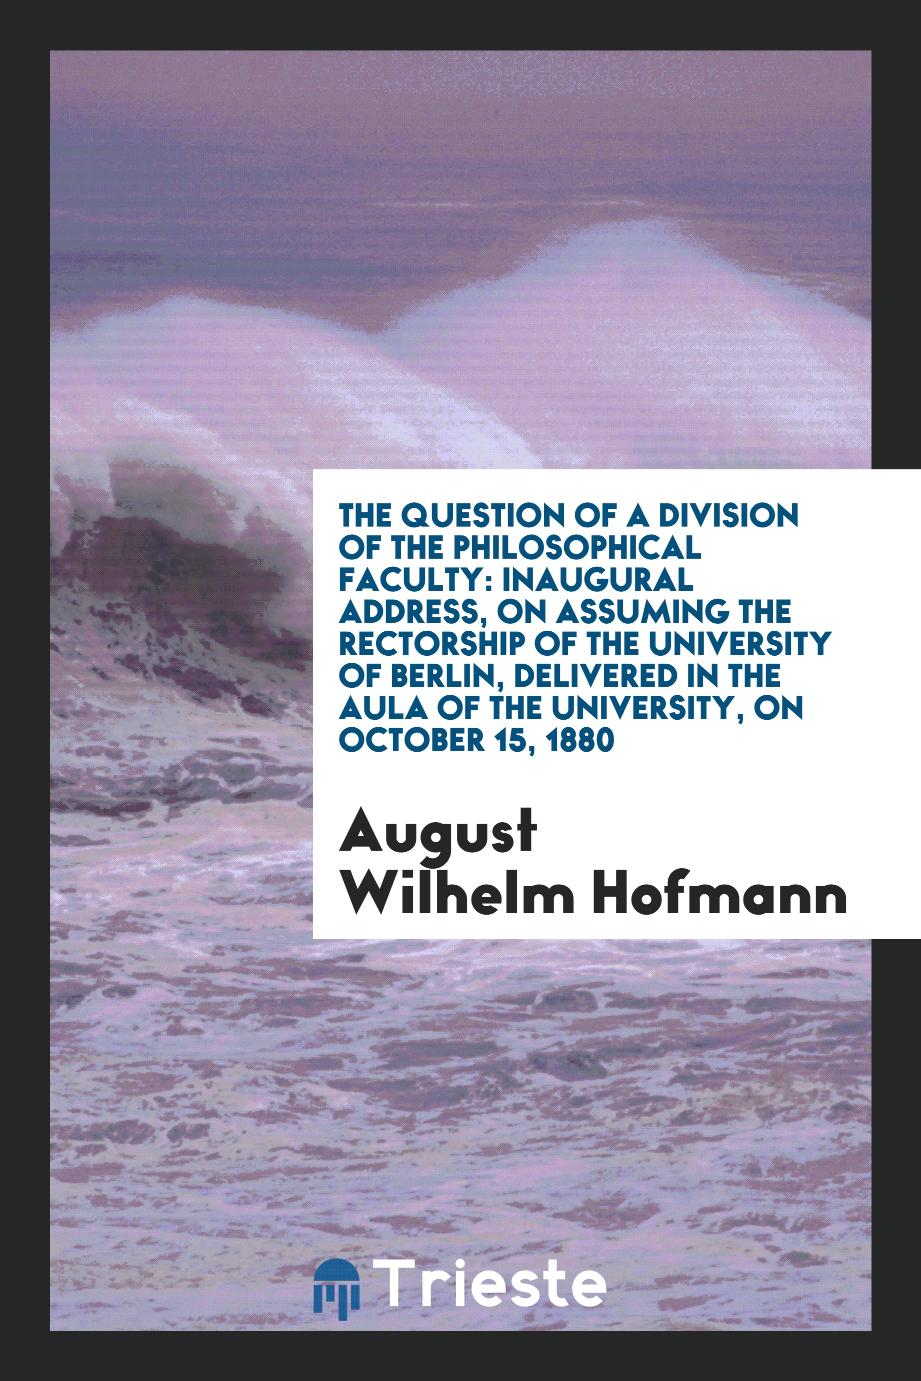 The Question of a Division of the Philosophical Faculty: Inaugural Address, on assuming the rectorship of the university of Berlin, delivered in the Aula of the University, on October 15, 1880